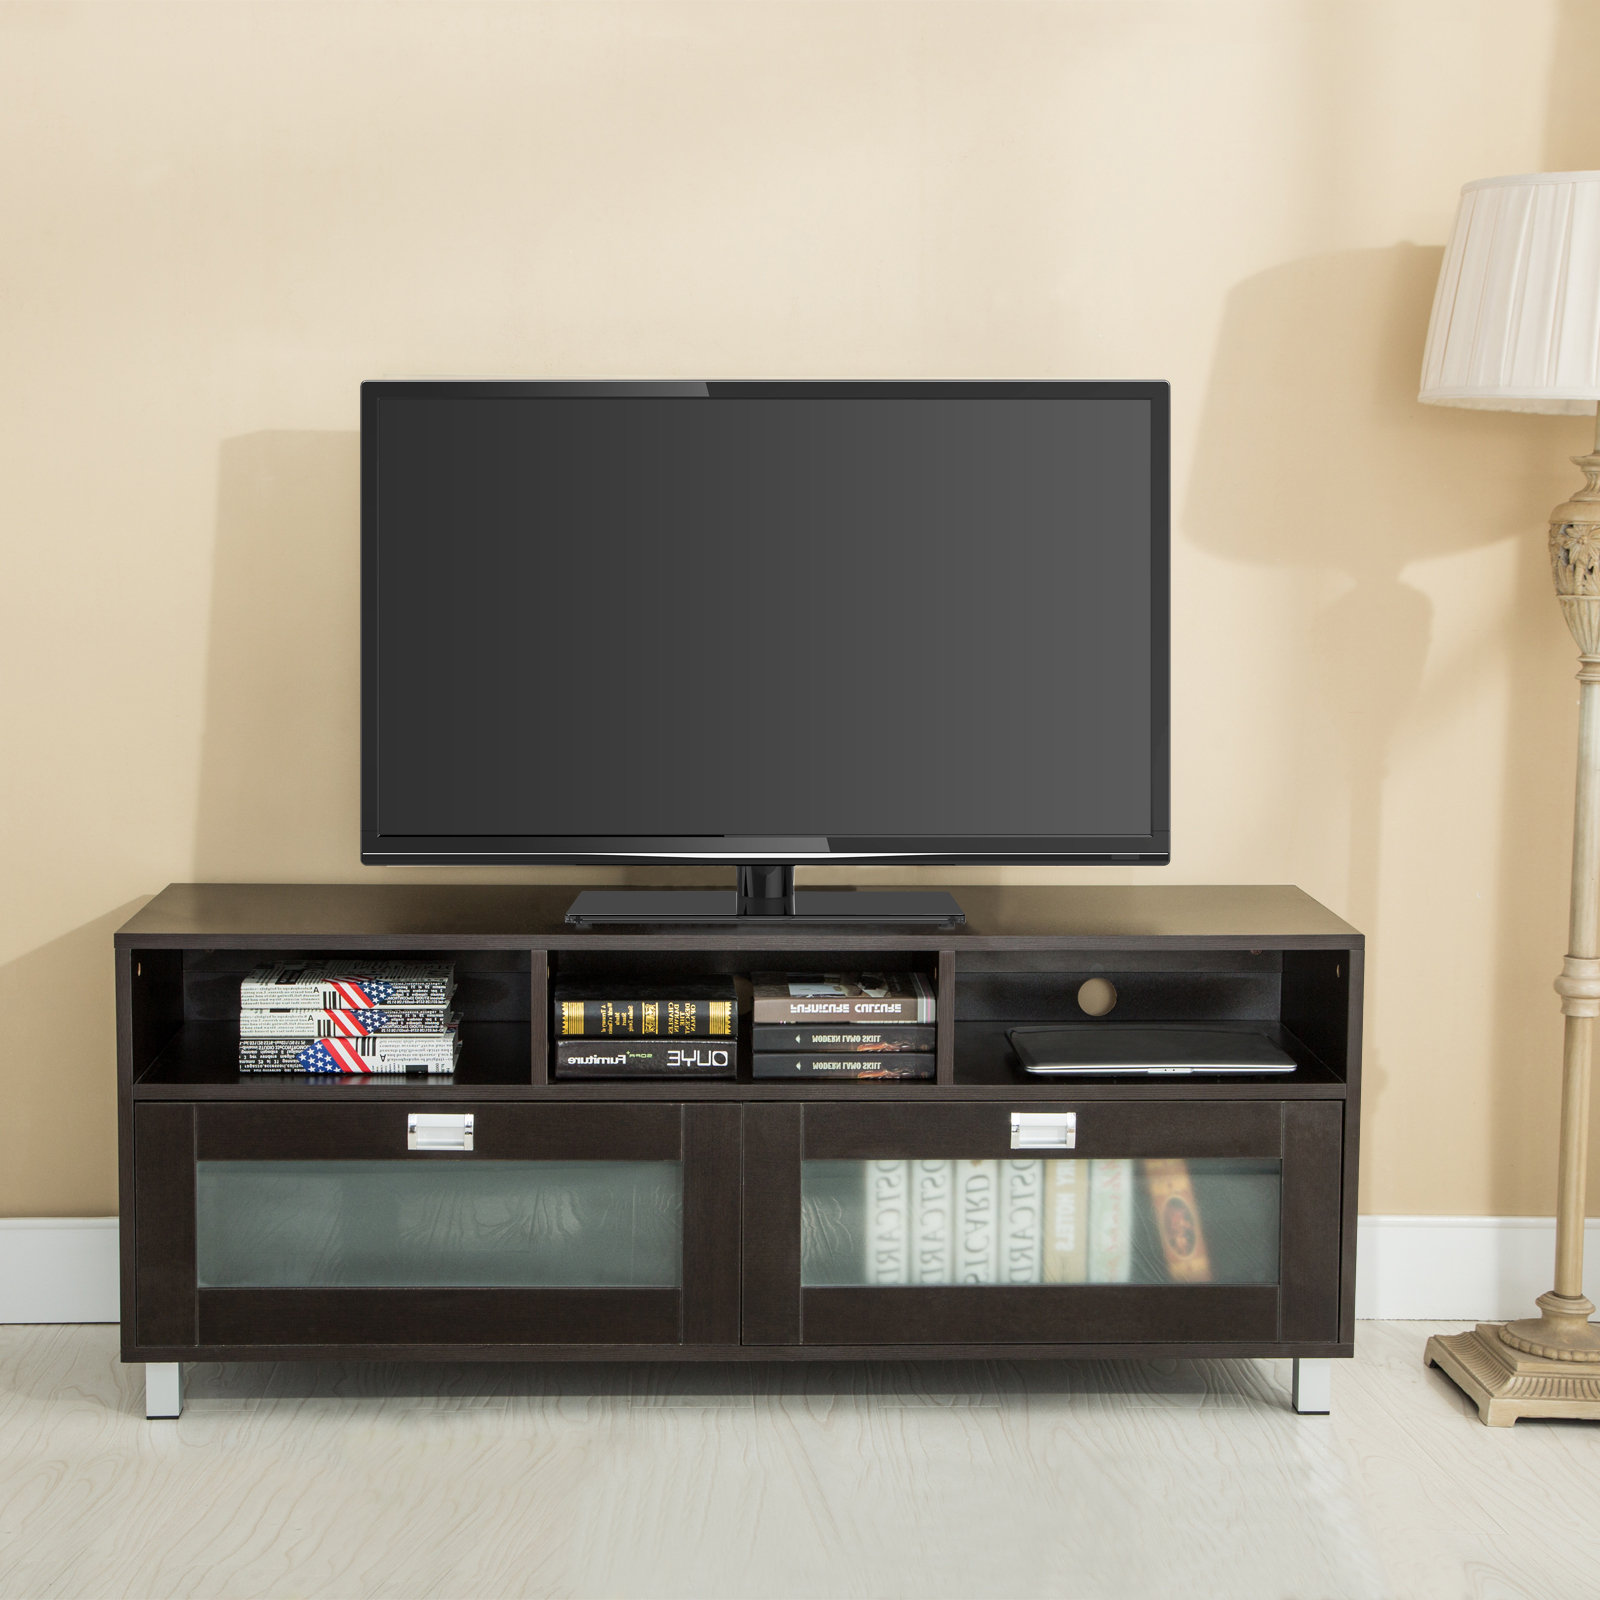 Cabinet Tv Stands Within Latest Tv Stand With Cabinet – Happyhearts (View 4 of 20)